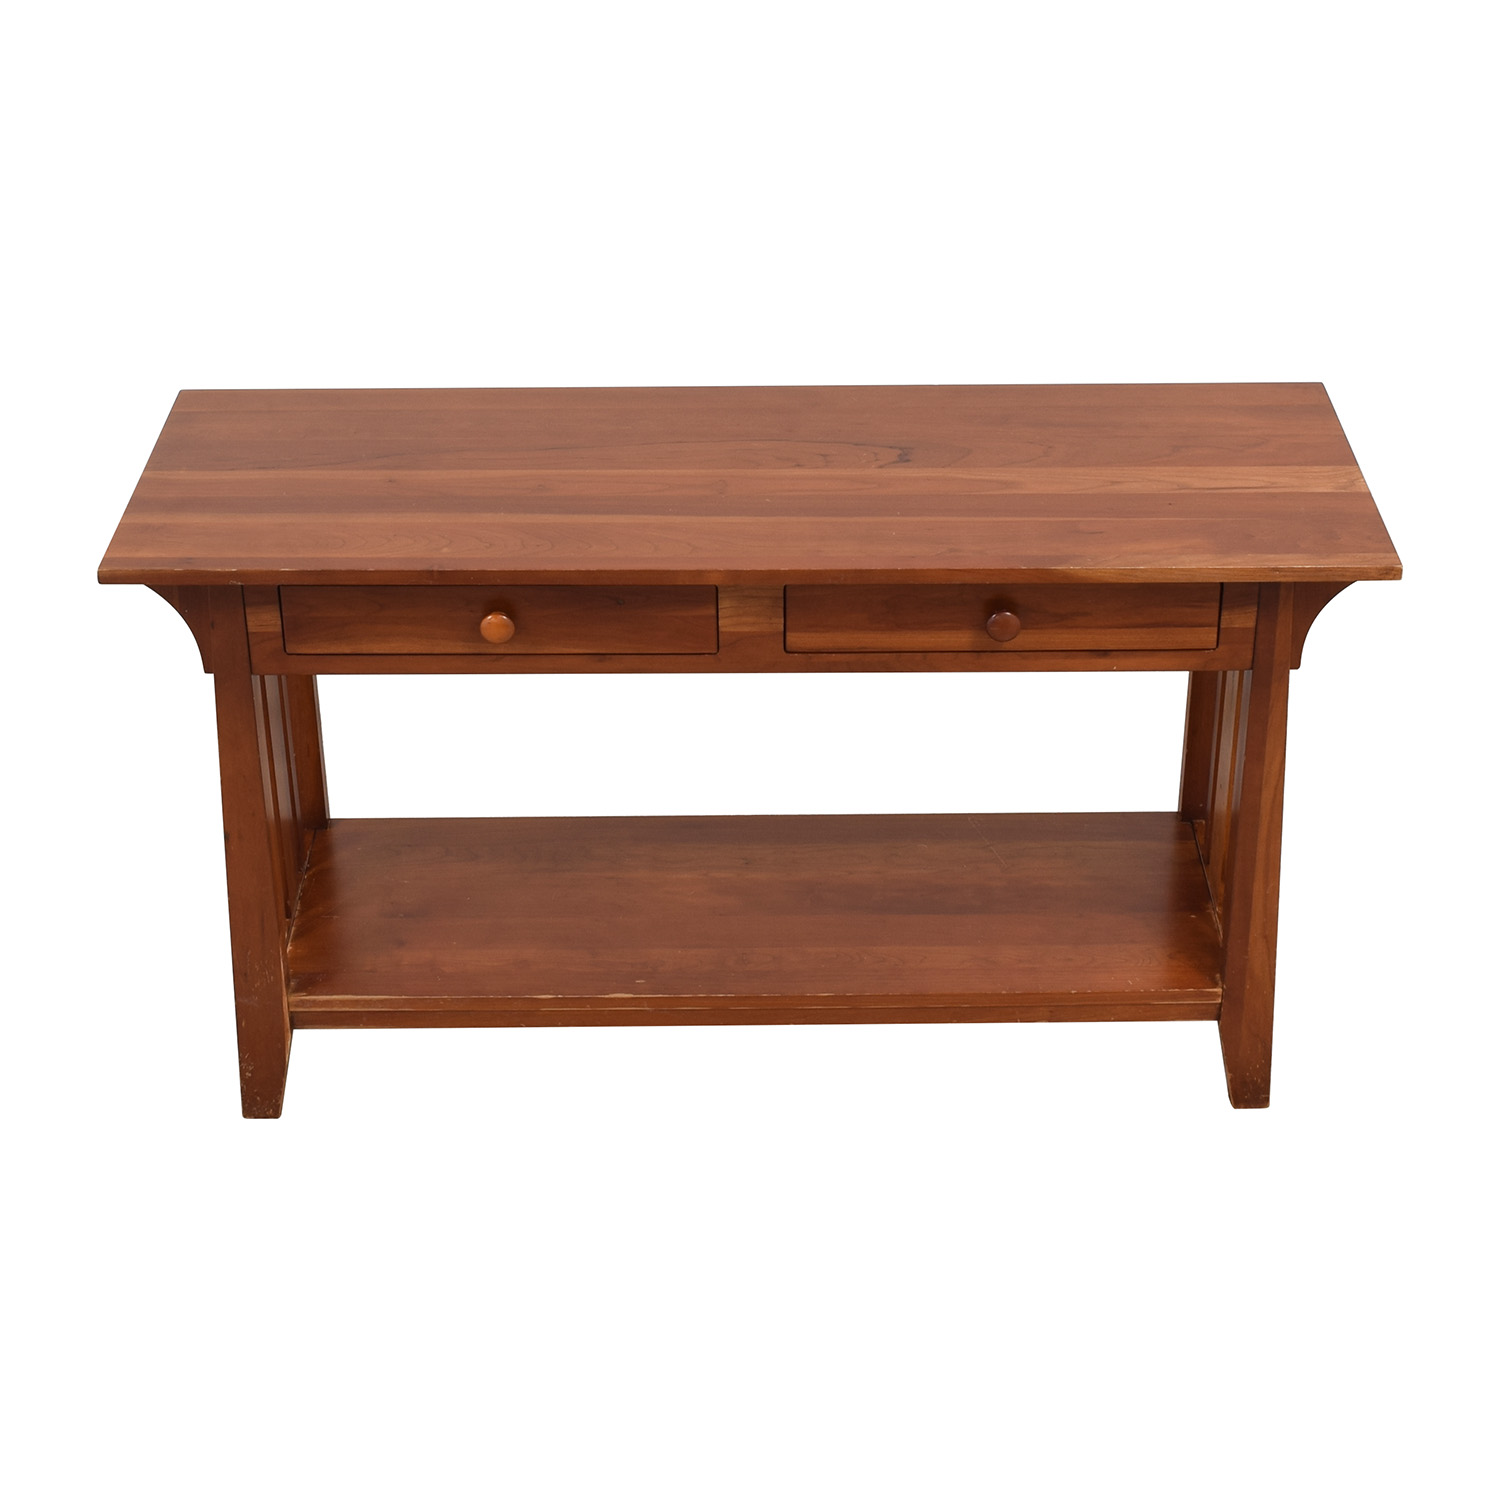 Ethan Allen Ethan Allen Console with Drawers pa